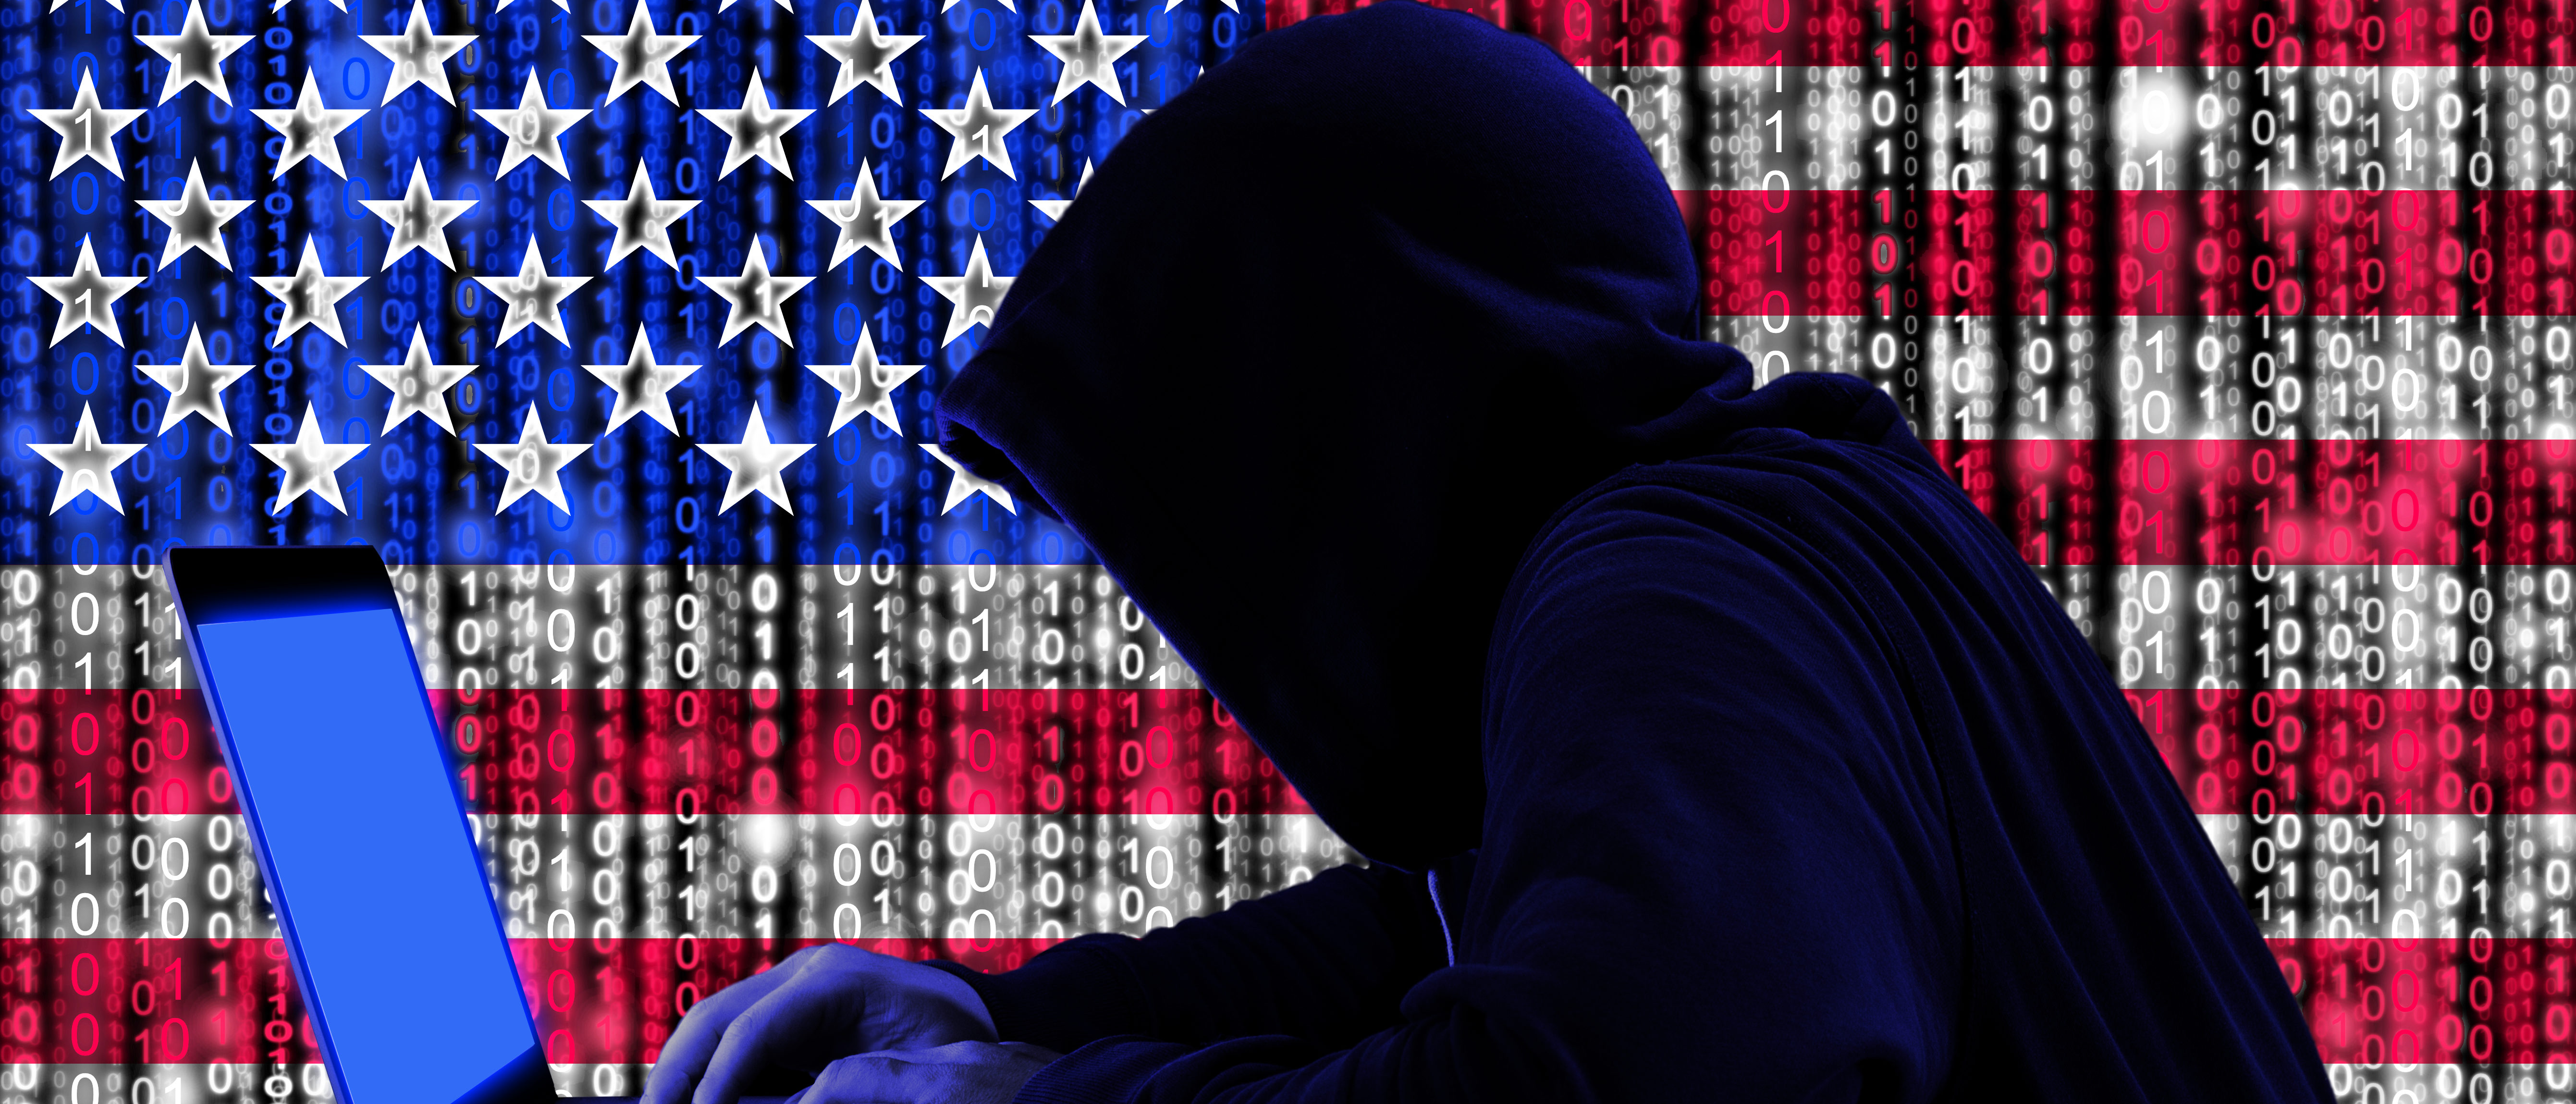 Several federal agencies, including the one responsible for protecting against cyber attacks, have been left vulnerable to attacks for at least 10 years according to a new report. (BeeBright/Shutterstock)